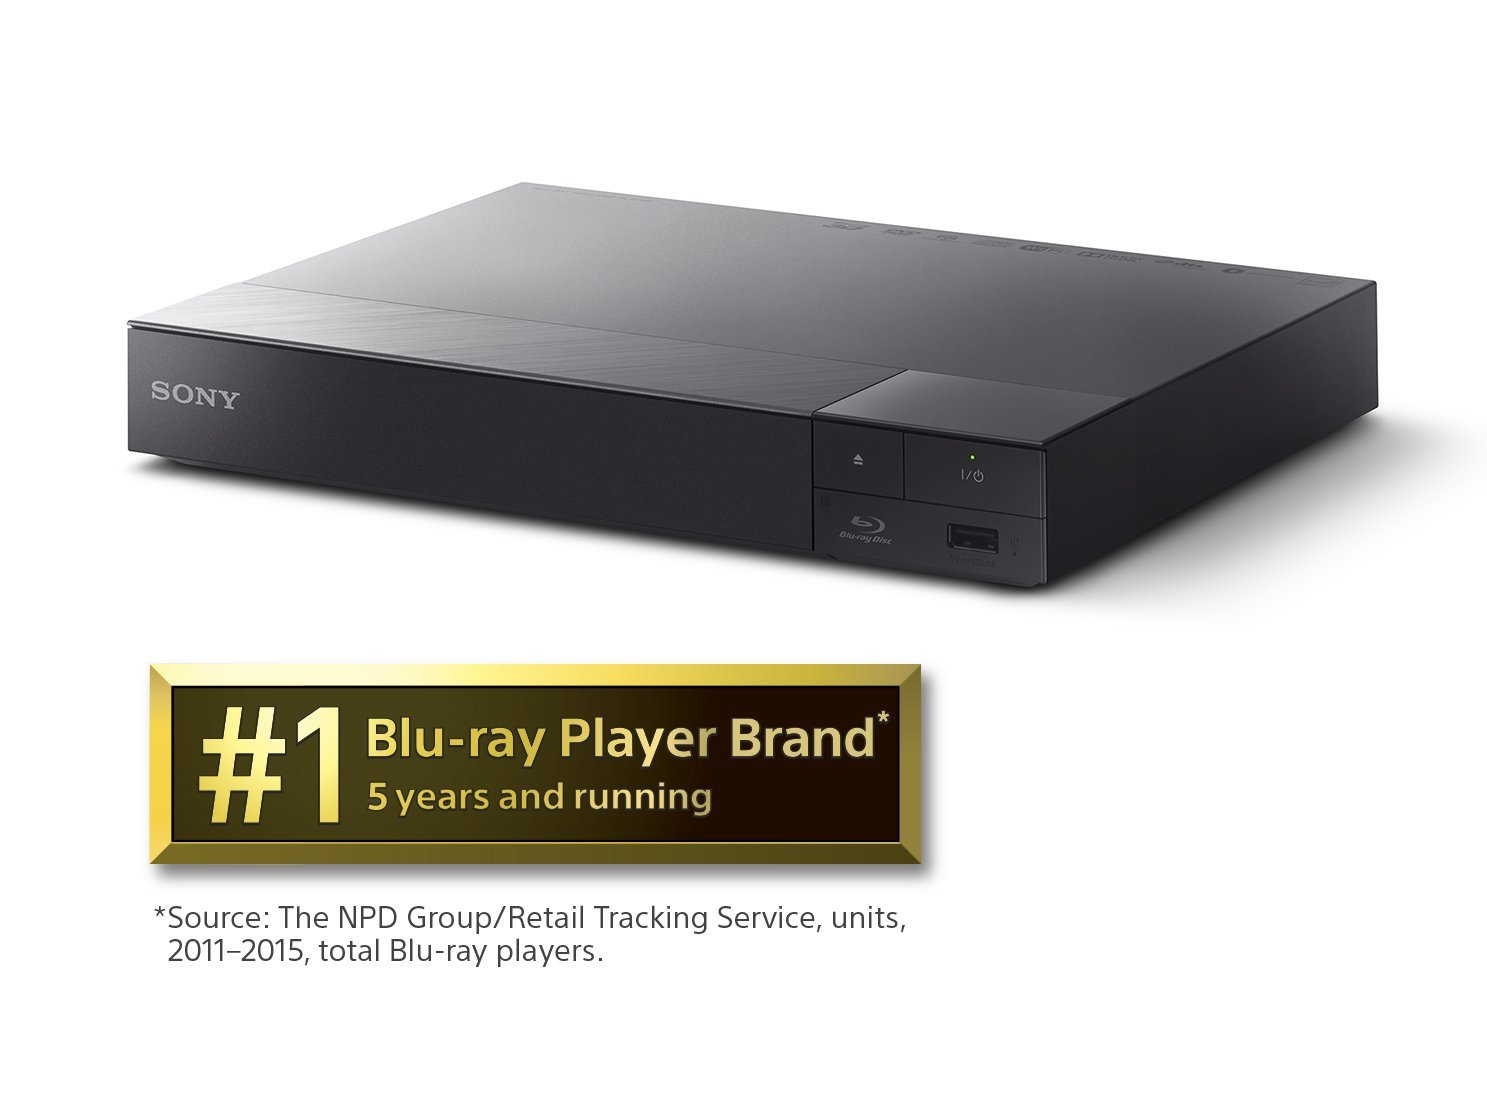 Sh Show Me How To Play A Dvd In My Pc - Amazon com sony bdps6500 3d 4k upscaling blu ray player with wi fi 2015 model electronics